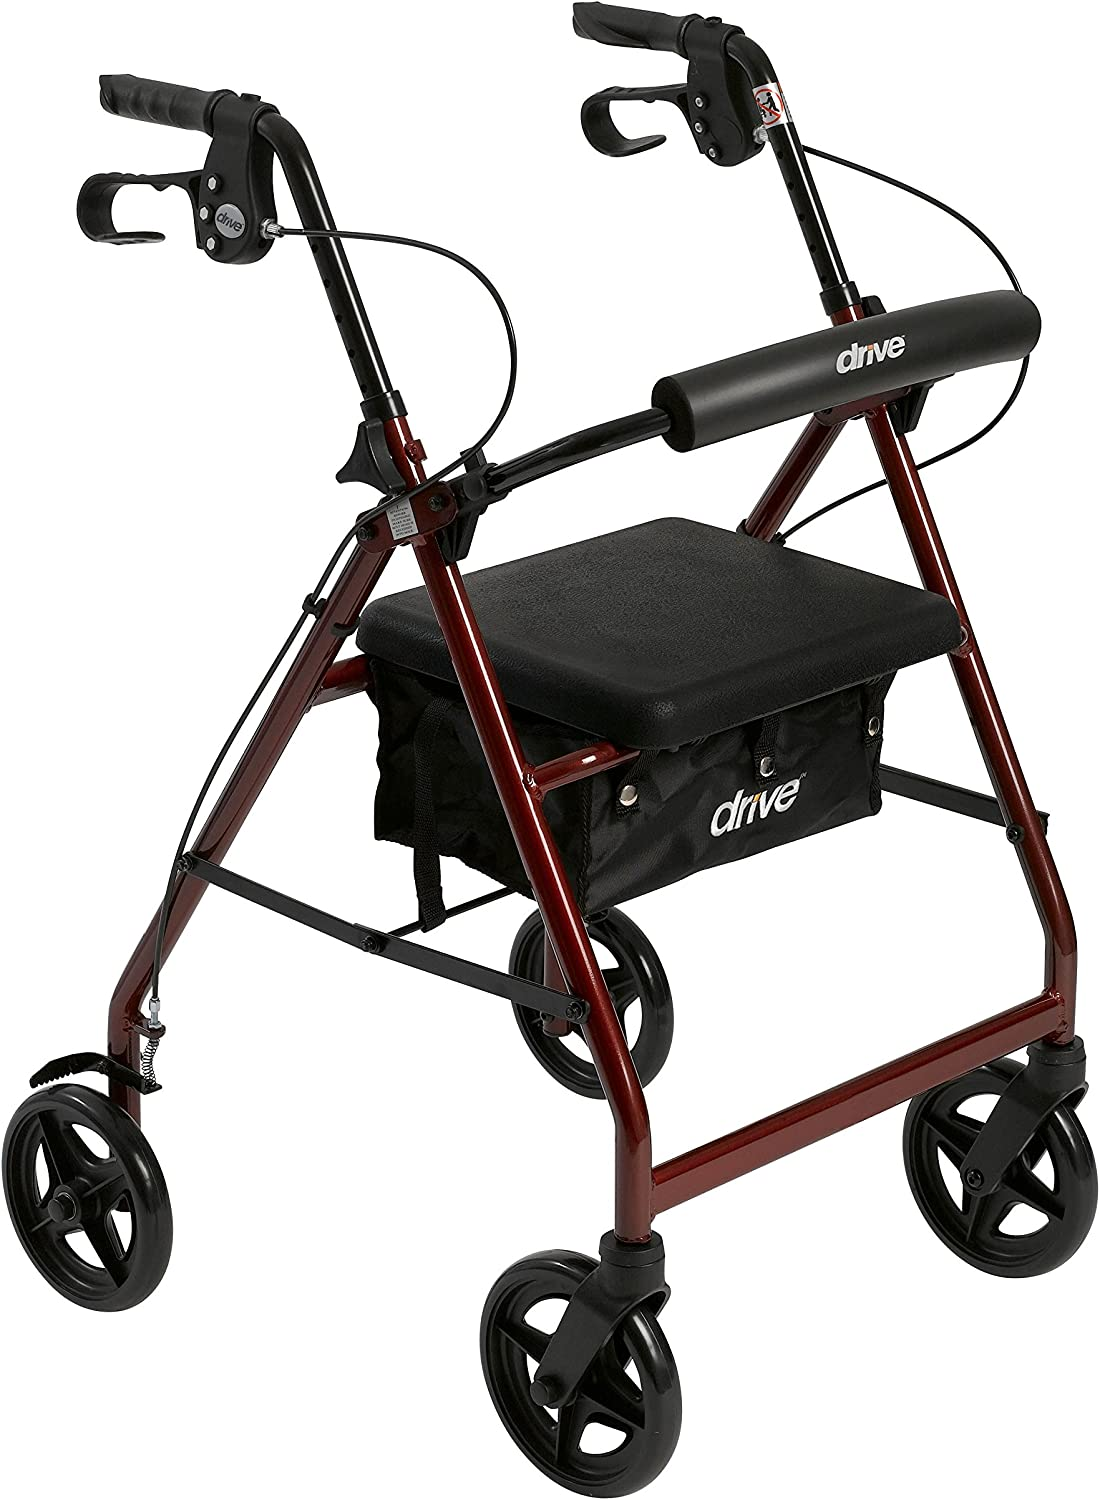 Drive Medical Aluminum Rollator Fold Up and Removable Back Support, Padded Seat with 7.5-Inch Casters, Red 81MbJW2EPoL